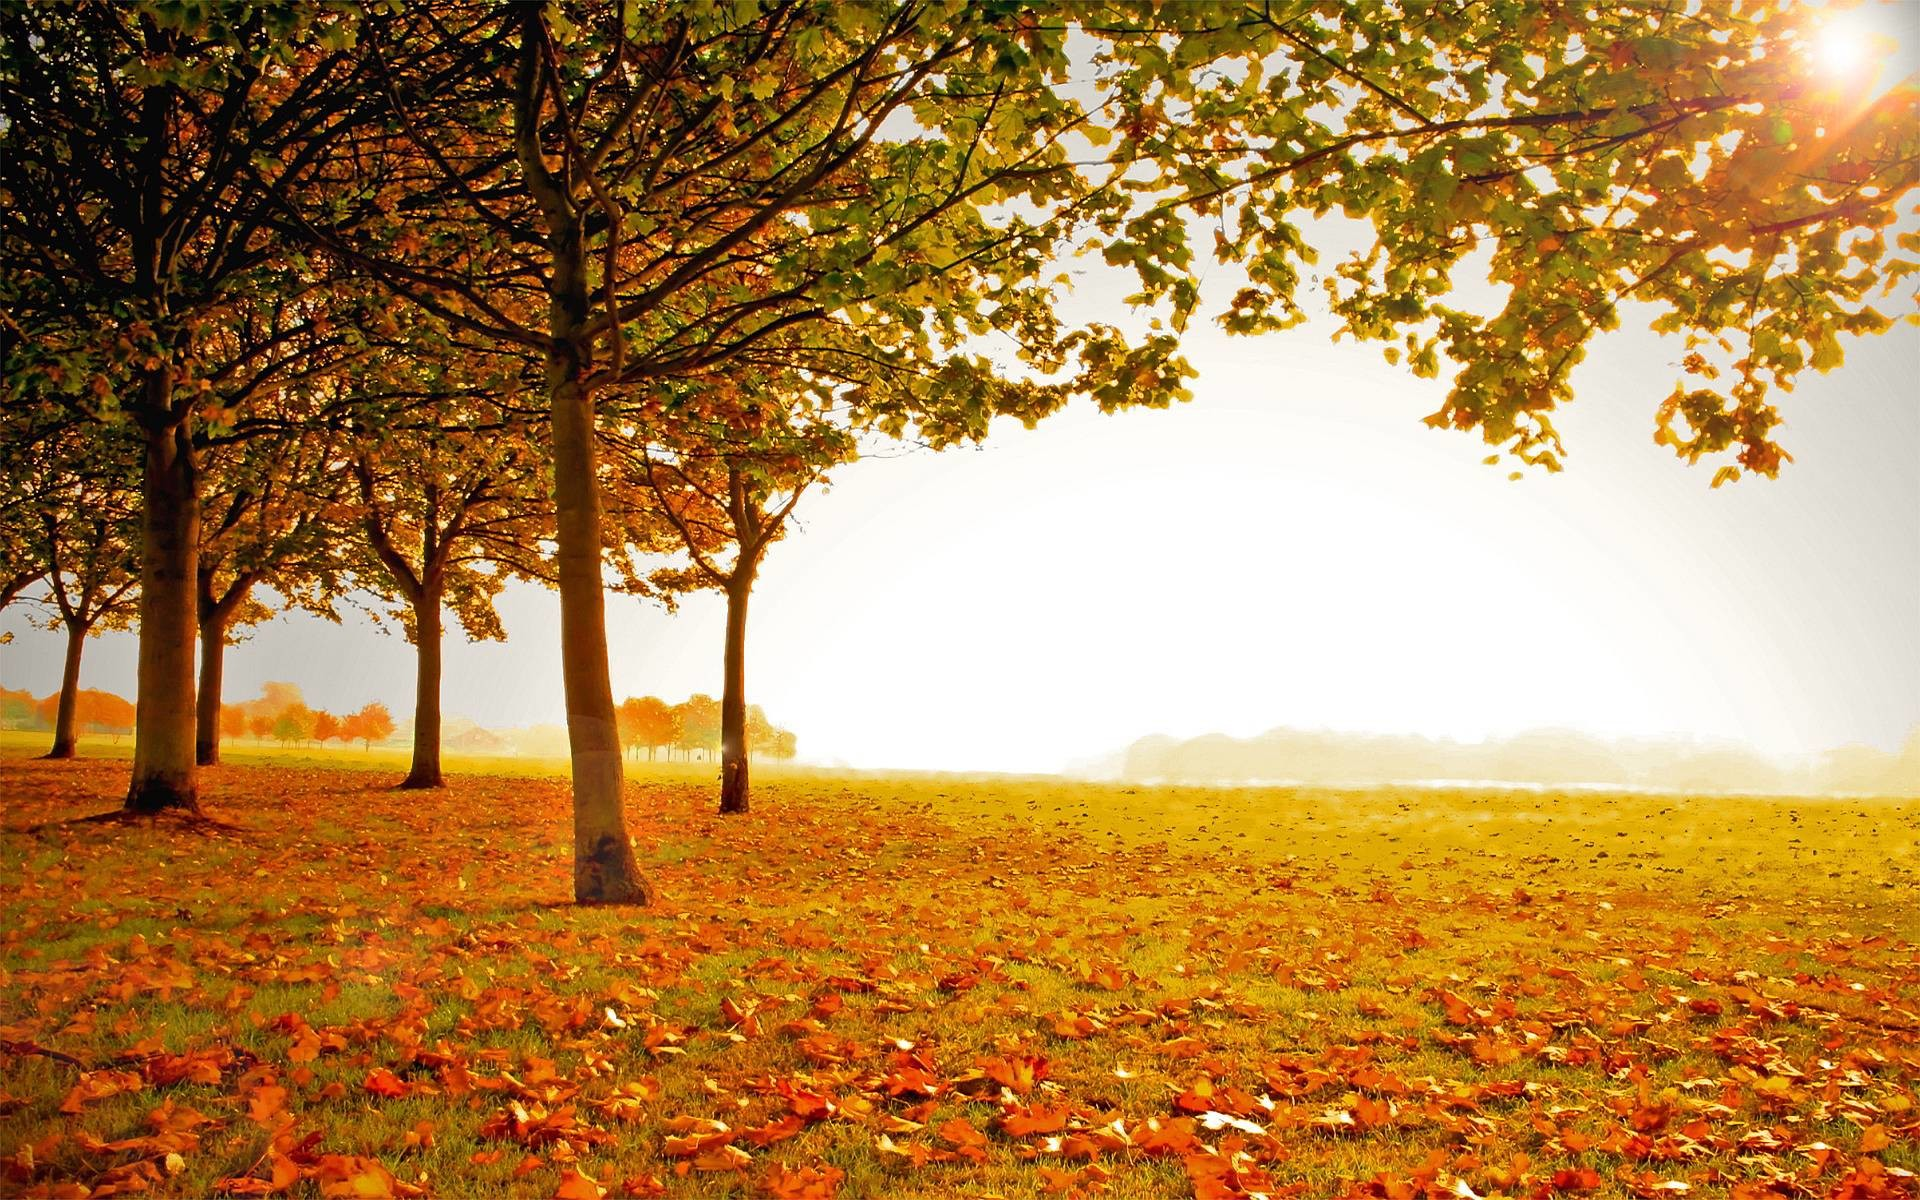 1920x1200 Autumn Landscape Wallpaper Hd 1080P 12 HD Wallpapers | Eakai.